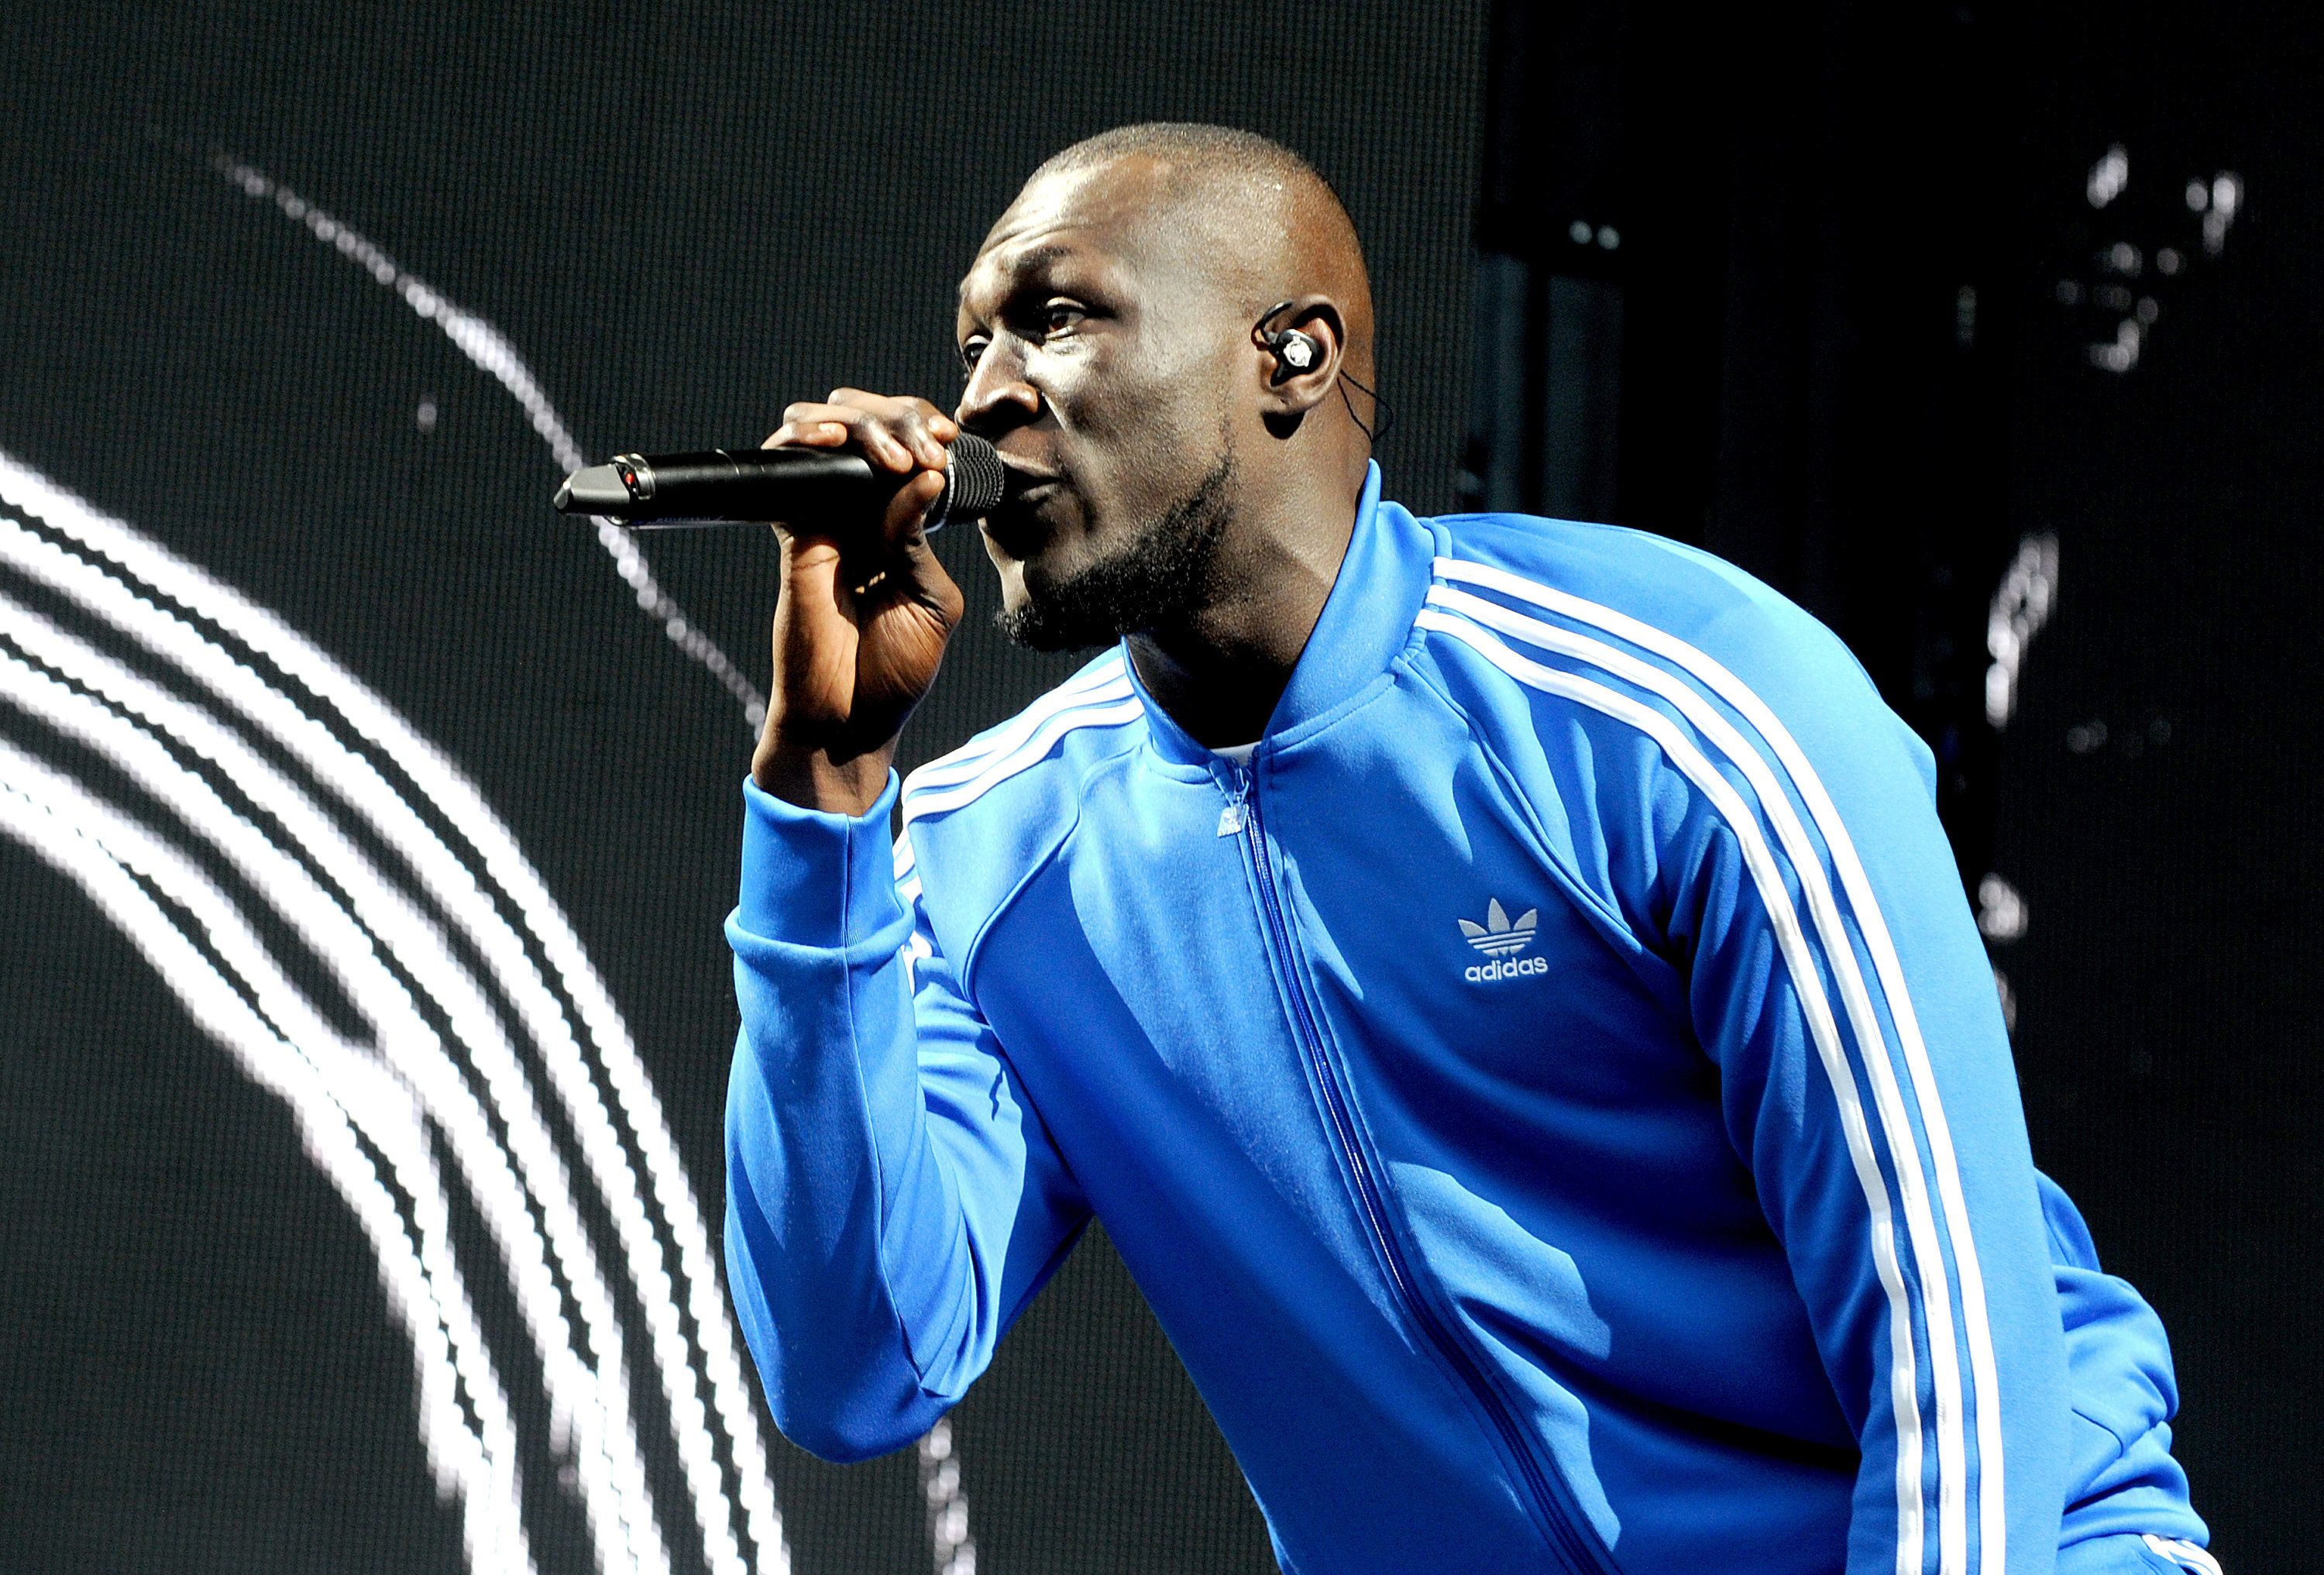 Stormzy Calls For Government 'To Be Held Accountable' Over Grenfell Tower Tragedy During Glasto